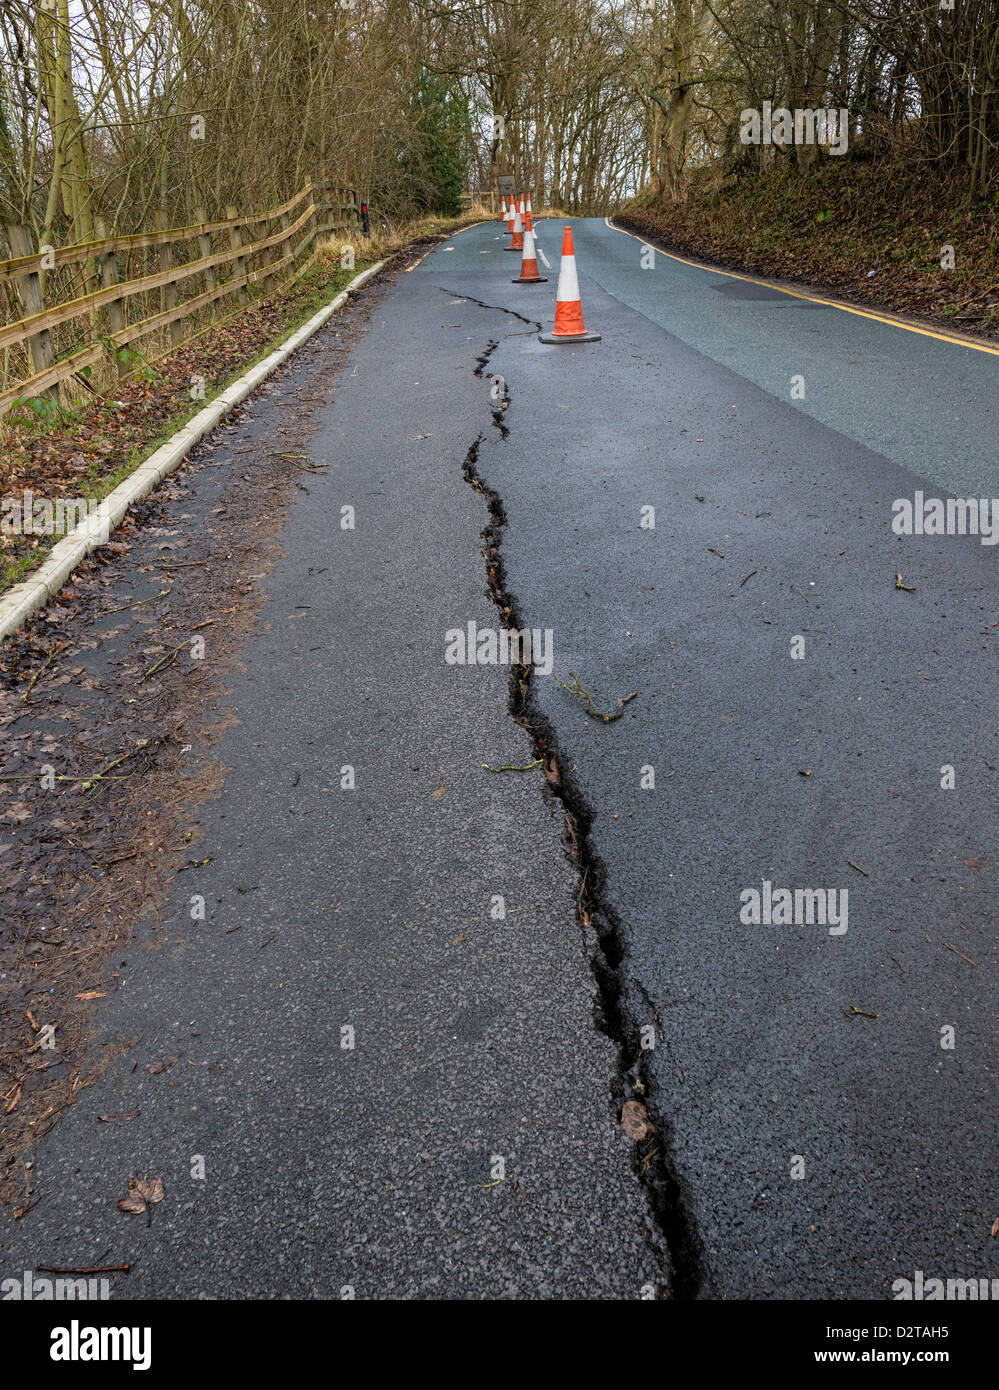 Crack in road due to subsidence - Stock Image